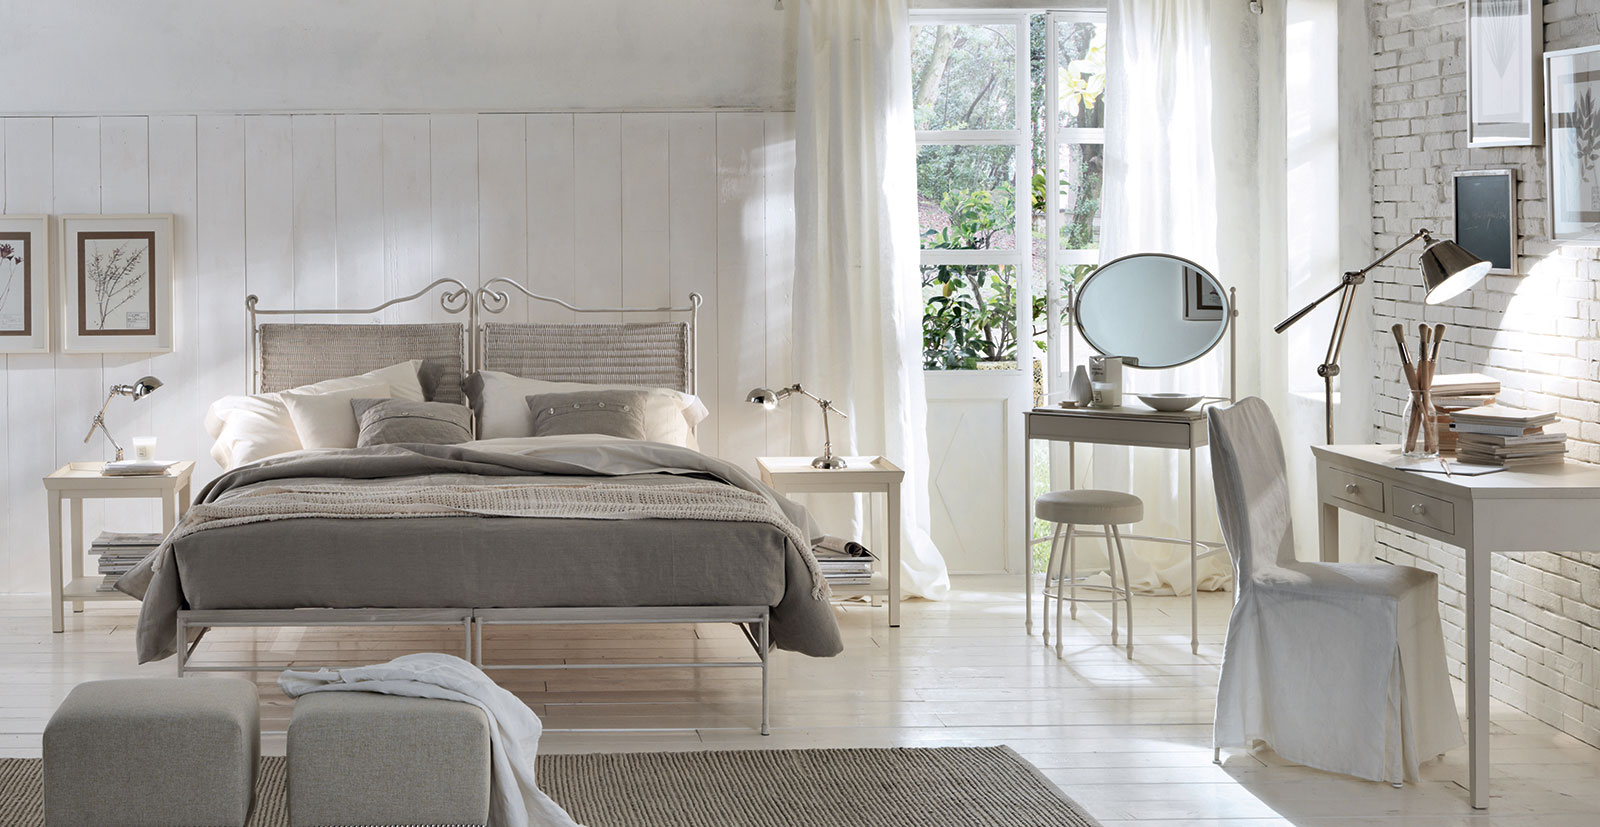 Letto matrimoniale country by91 regardsdefemmes - Camerette stile country chic ...